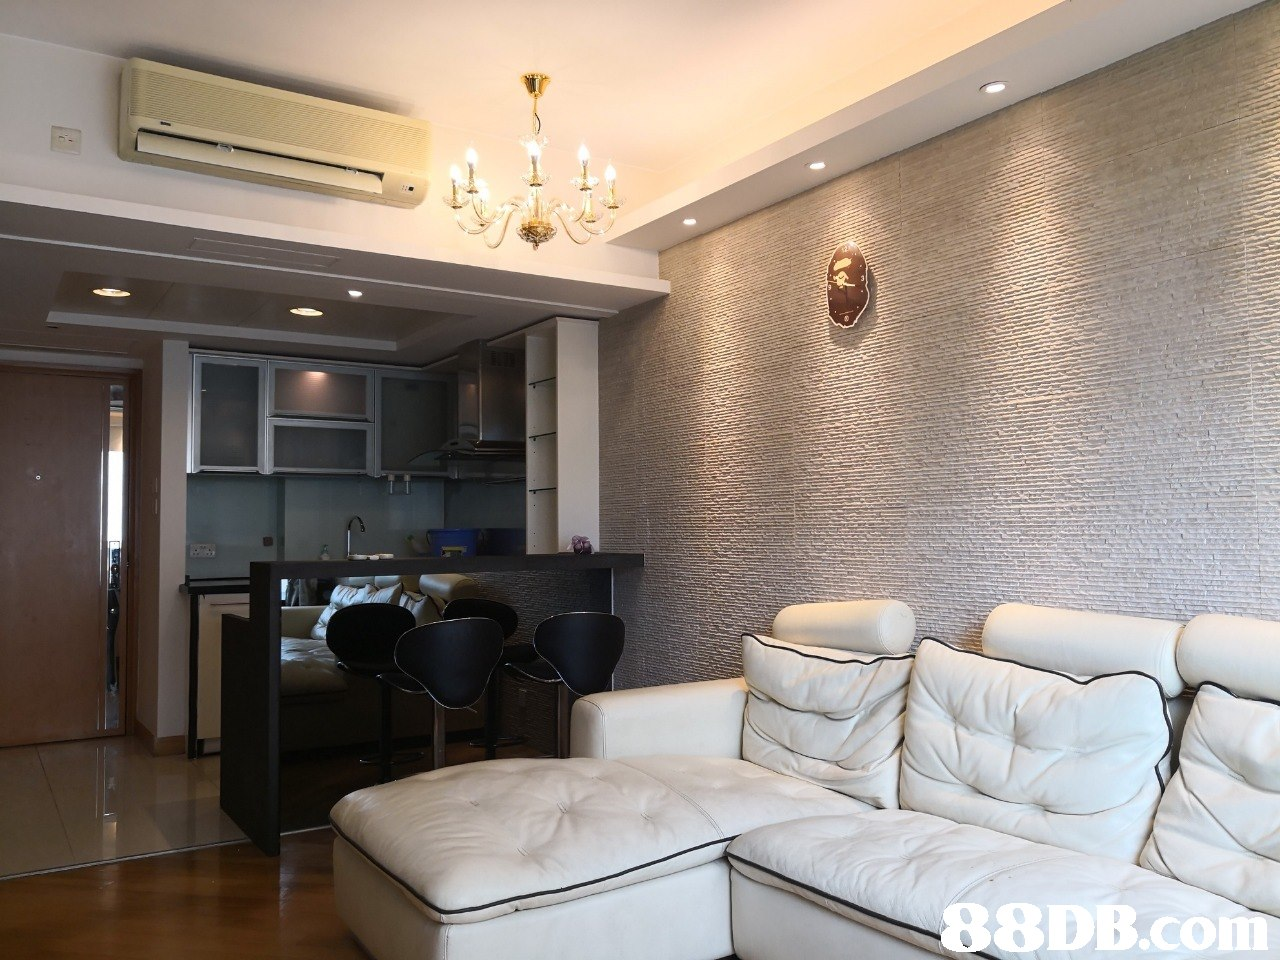 8DB.con  ceiling,interior design,property,room,living room